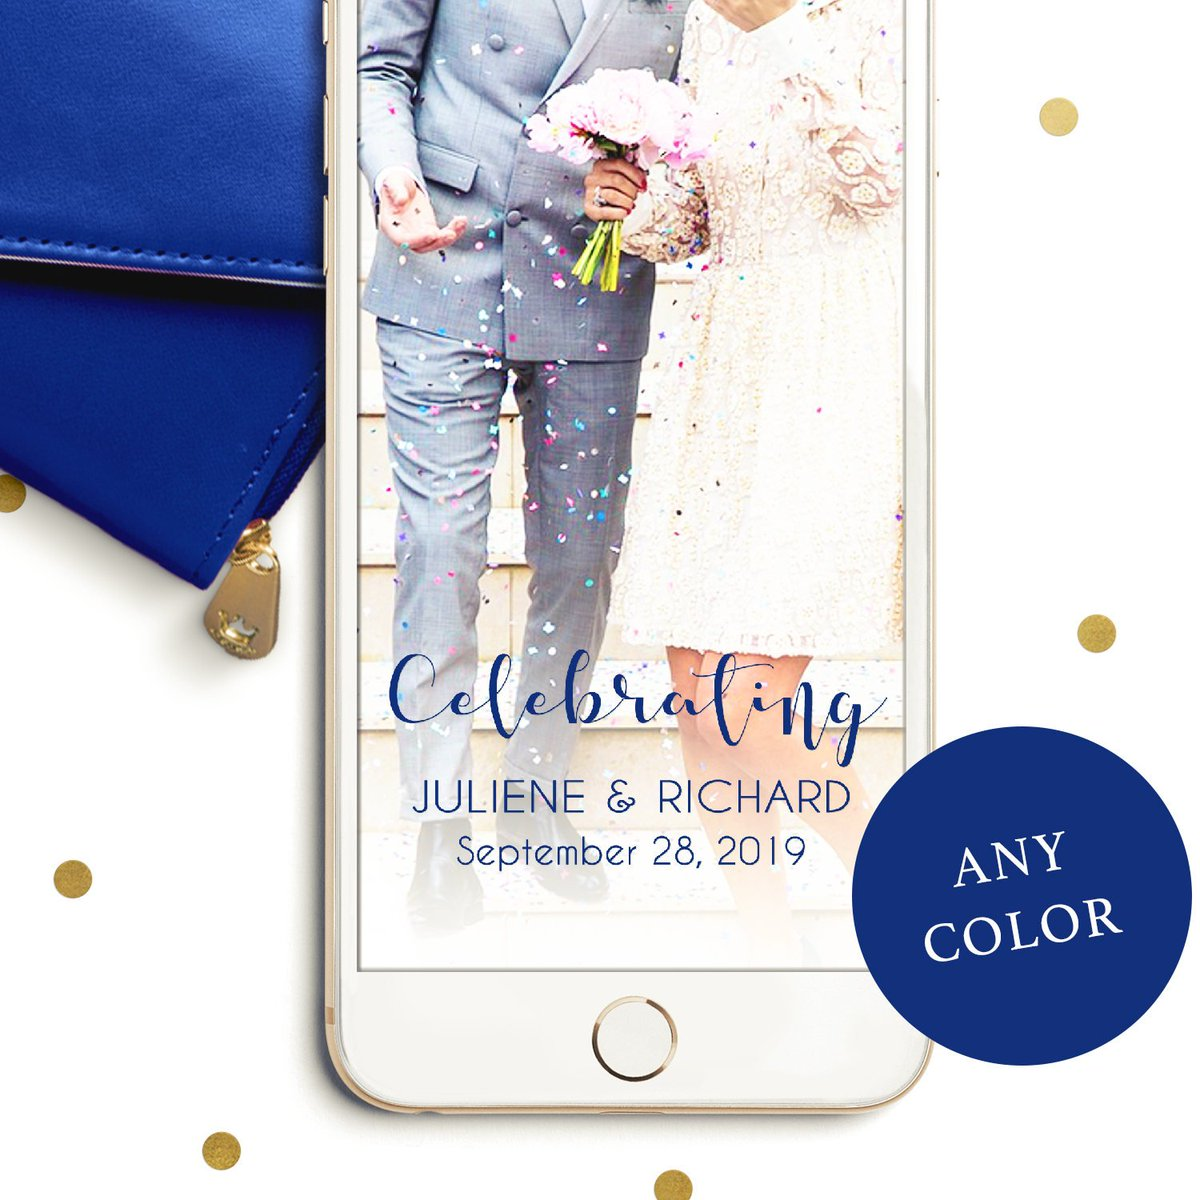 Cute Calligraphy Geofilter for Wedding #Wedding #Geofilter #SnapchatFilter  http:// etsy.me/2qeWhnw  &nbsp;  <br>http://pic.twitter.com/chQfYy0XJS